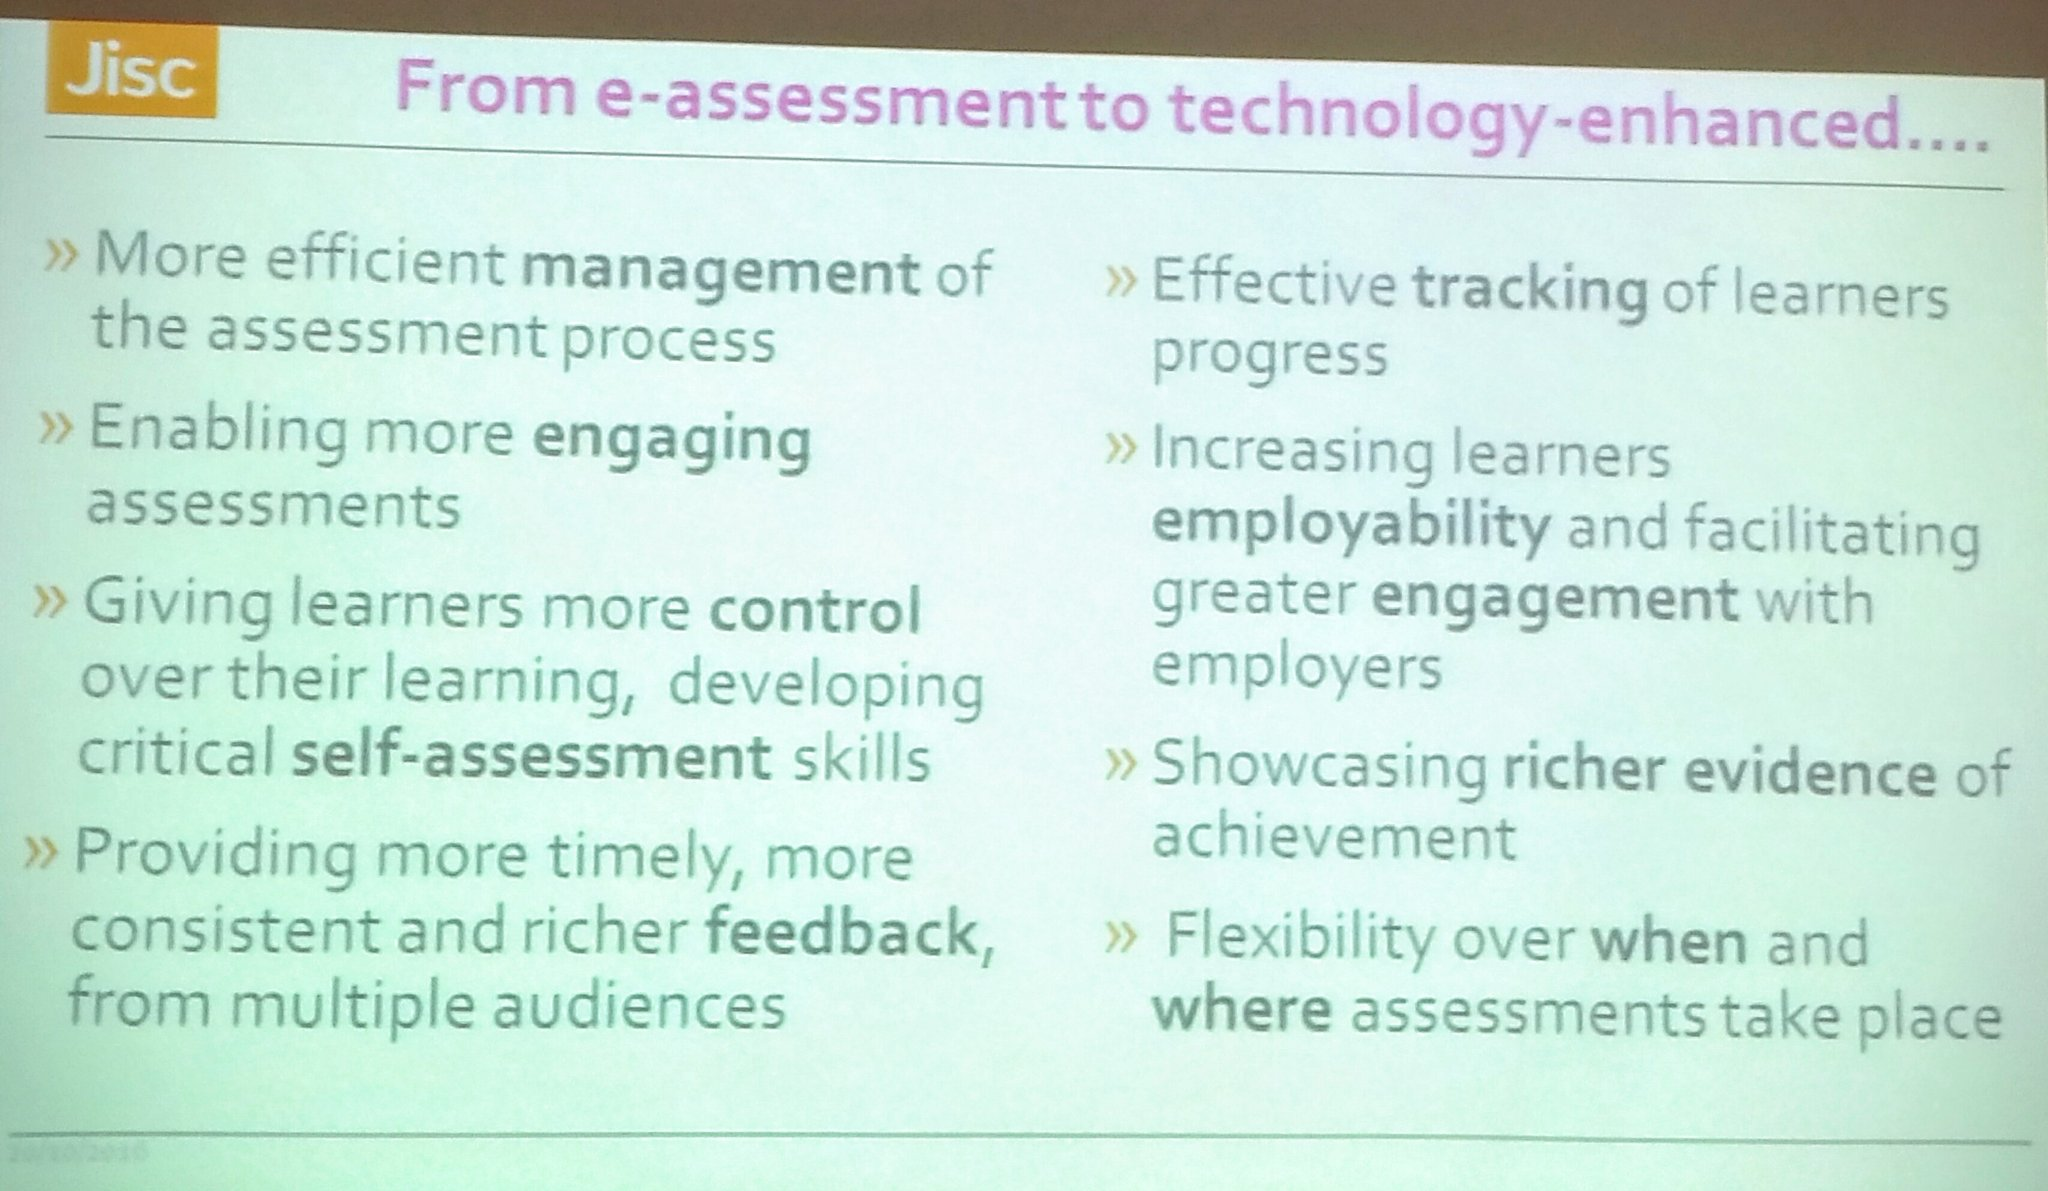 Potential benefits of technology for assessment @jisc #feltag #jiscassess https://t.co/c4pX0PwYtG